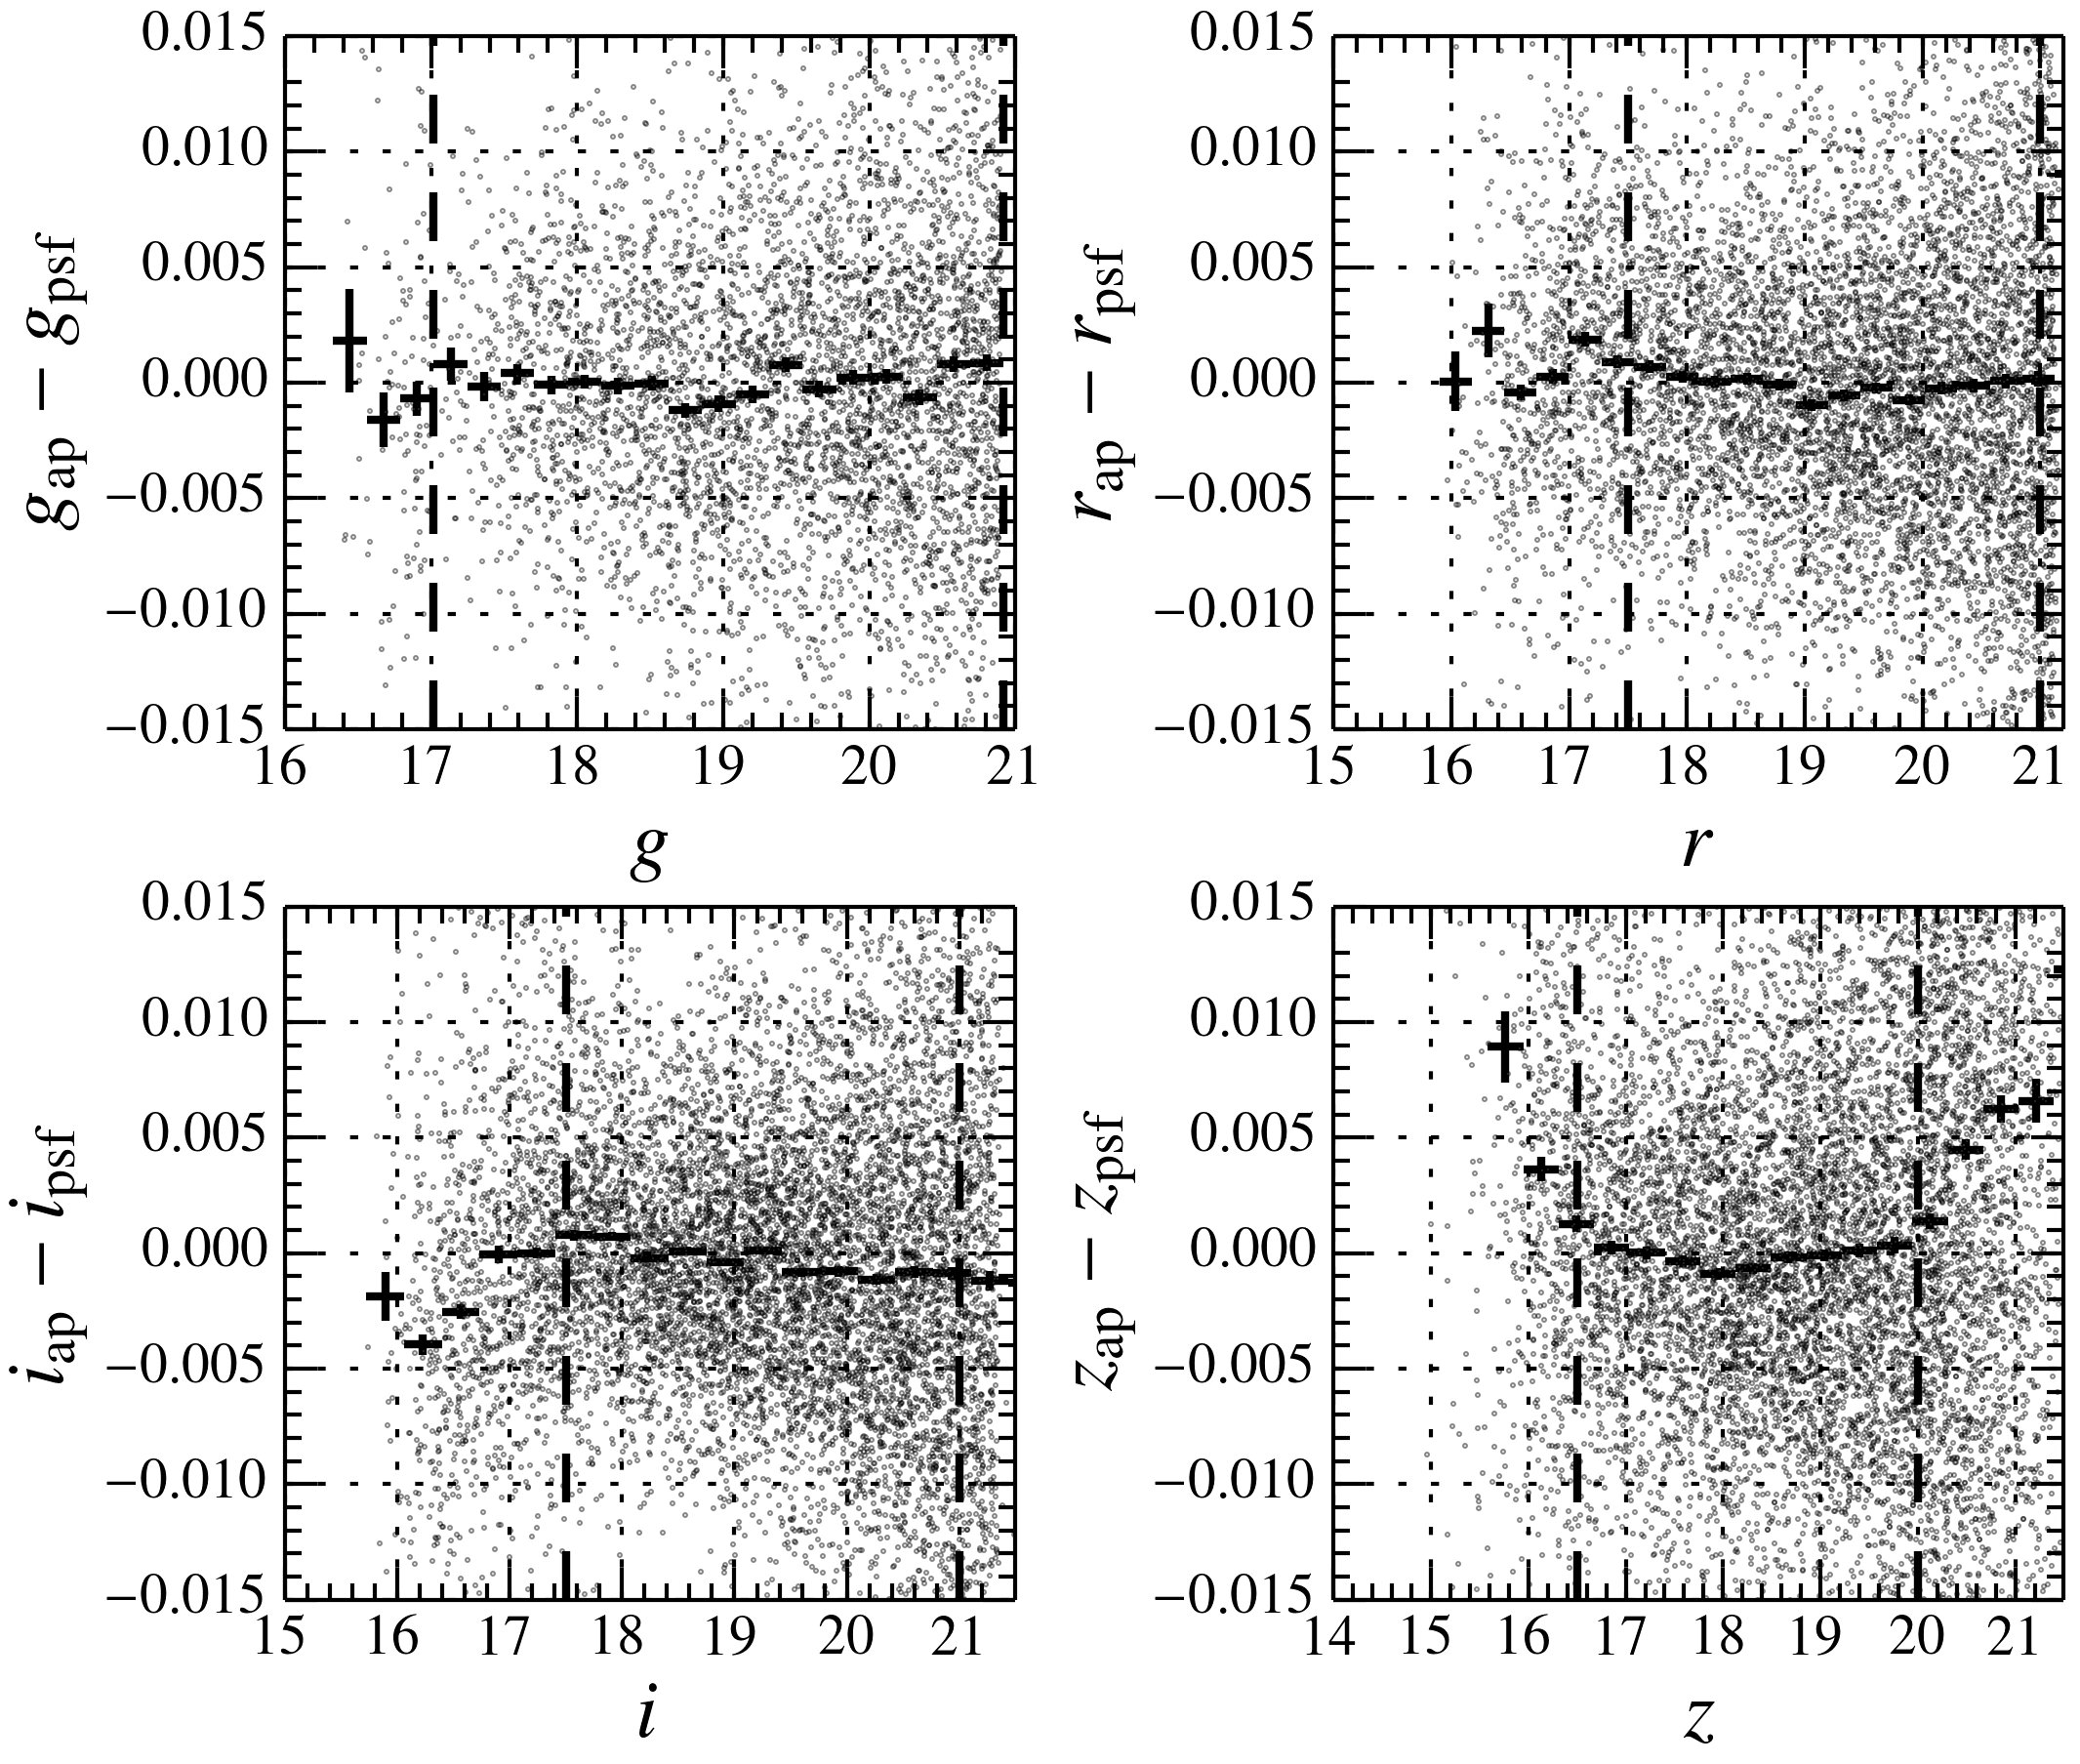 The difference between aperture and PSF photometry as a function of the SNLS tertiary standard star magnitude. The aperture photometry from